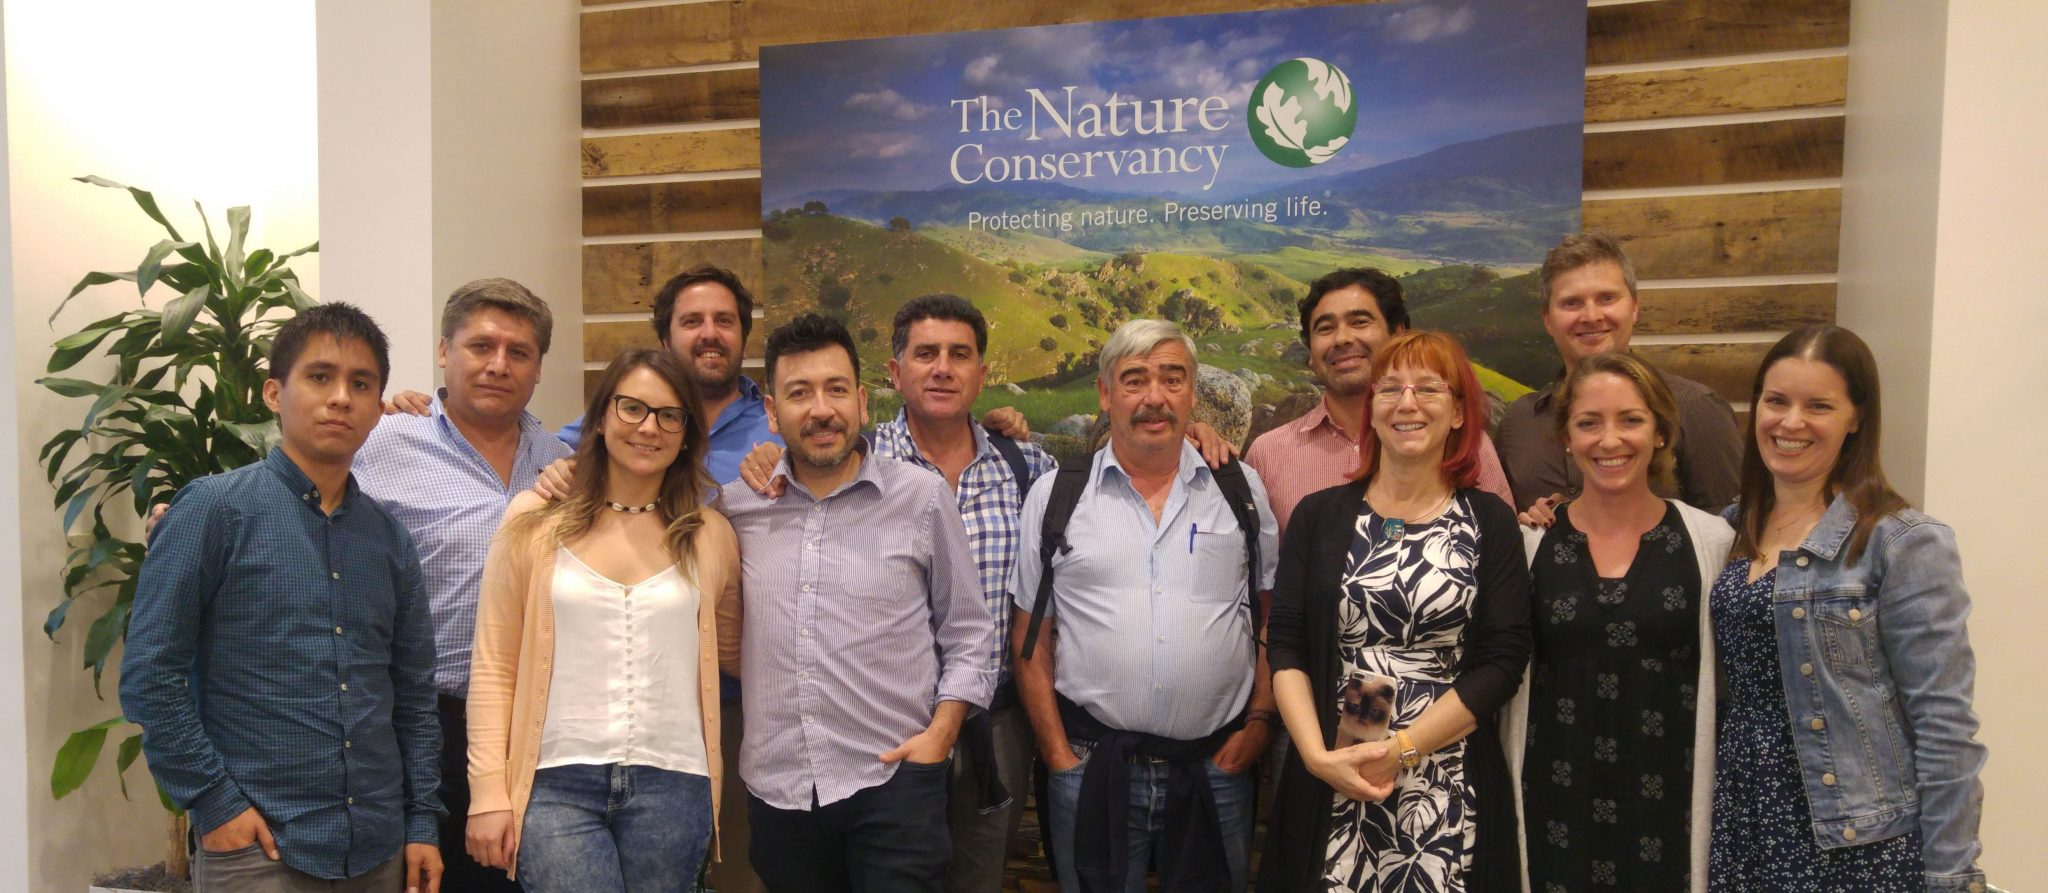 IFOP researchers are refined in the United States with the support of the NGO The Nature Conservancy